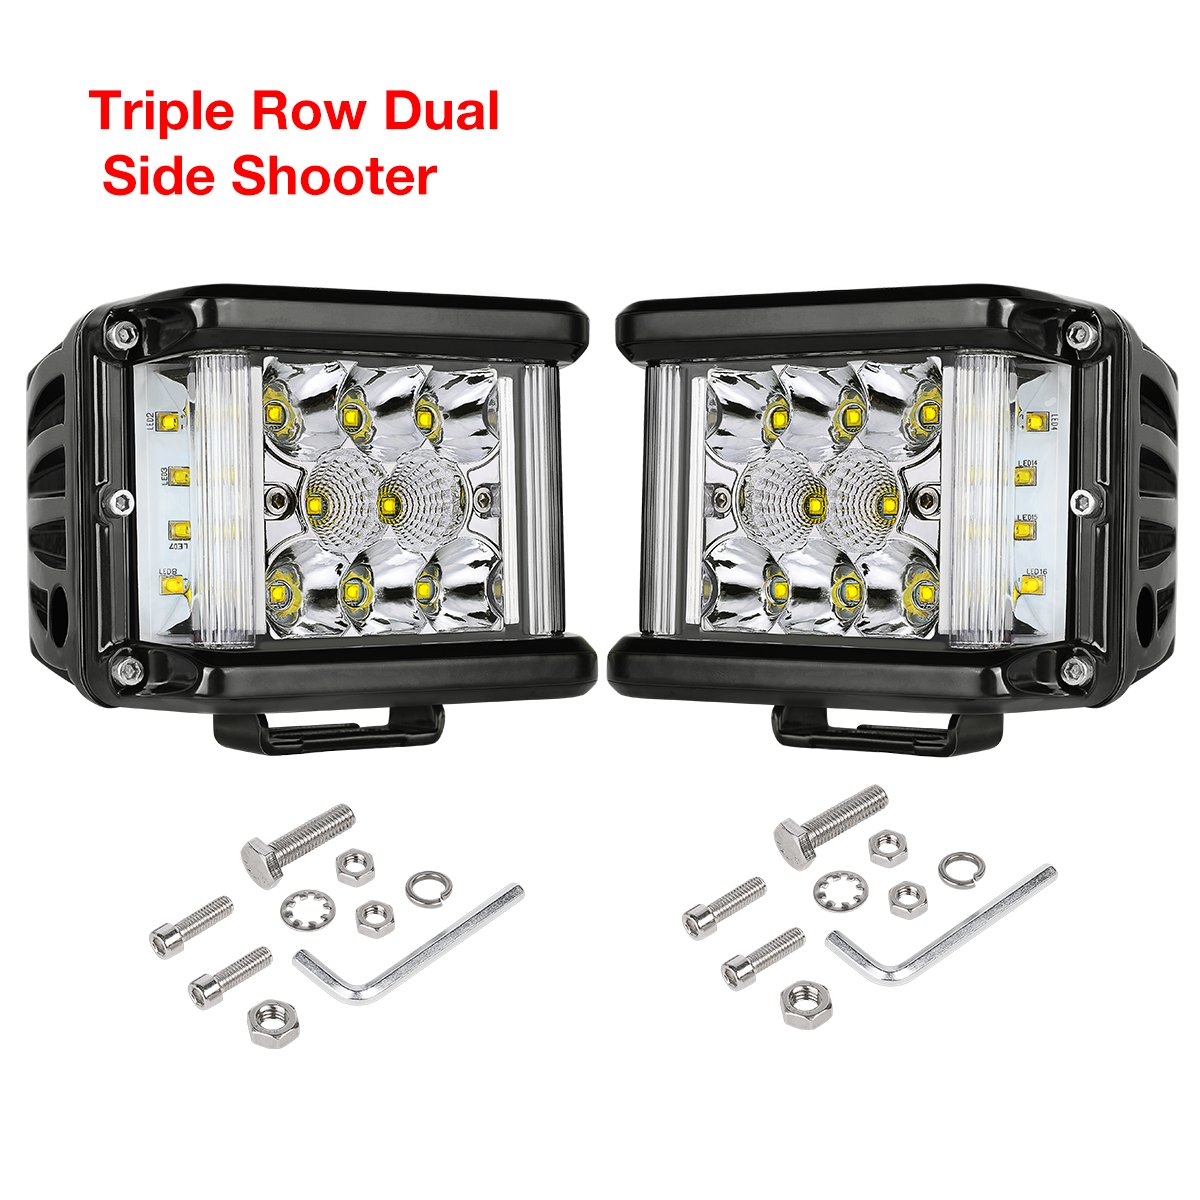 Side Shooter LED Lights, DJI 4X4 2Pcs 4'' 96W Triple Row CREE LED Pods Off Road Spot Flood Combo Beam Dual Side Cubes Work Light Driving Fog Lights for Trucks Jeep ATV SUV Boat, 2 Years Warranty